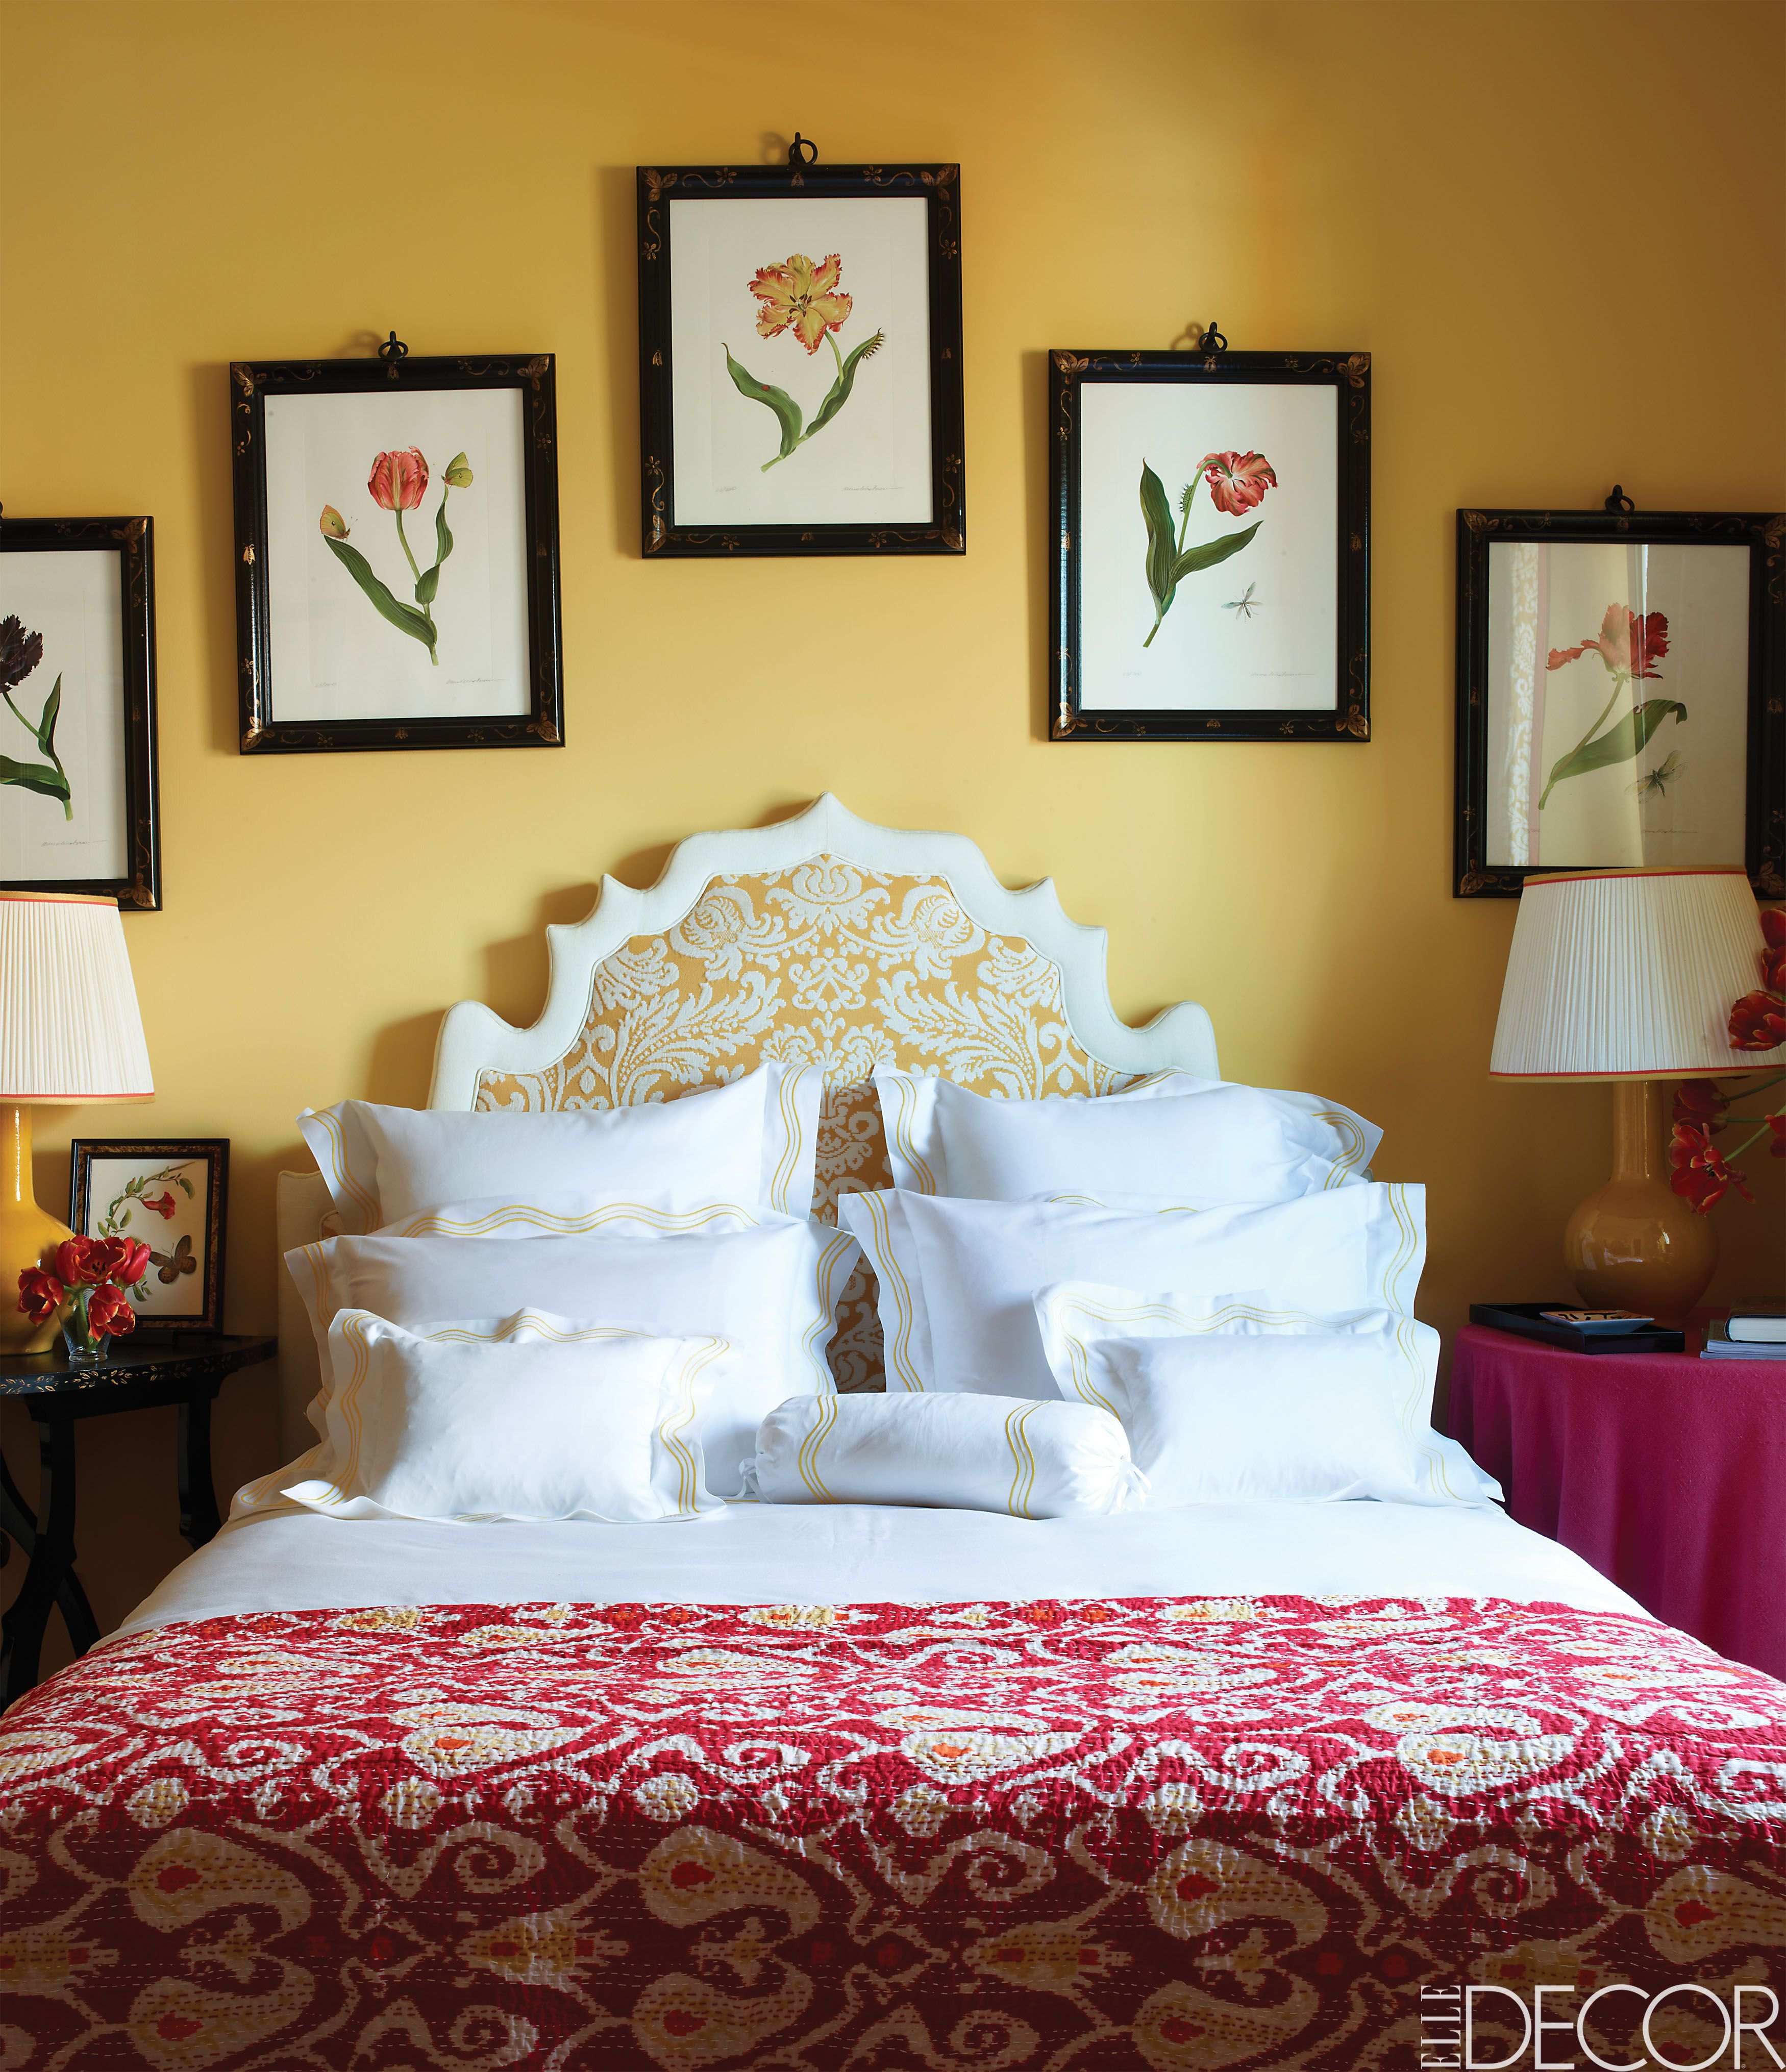 20 Guest Room Design Ideas - How To Decorate A Guest Bedroom